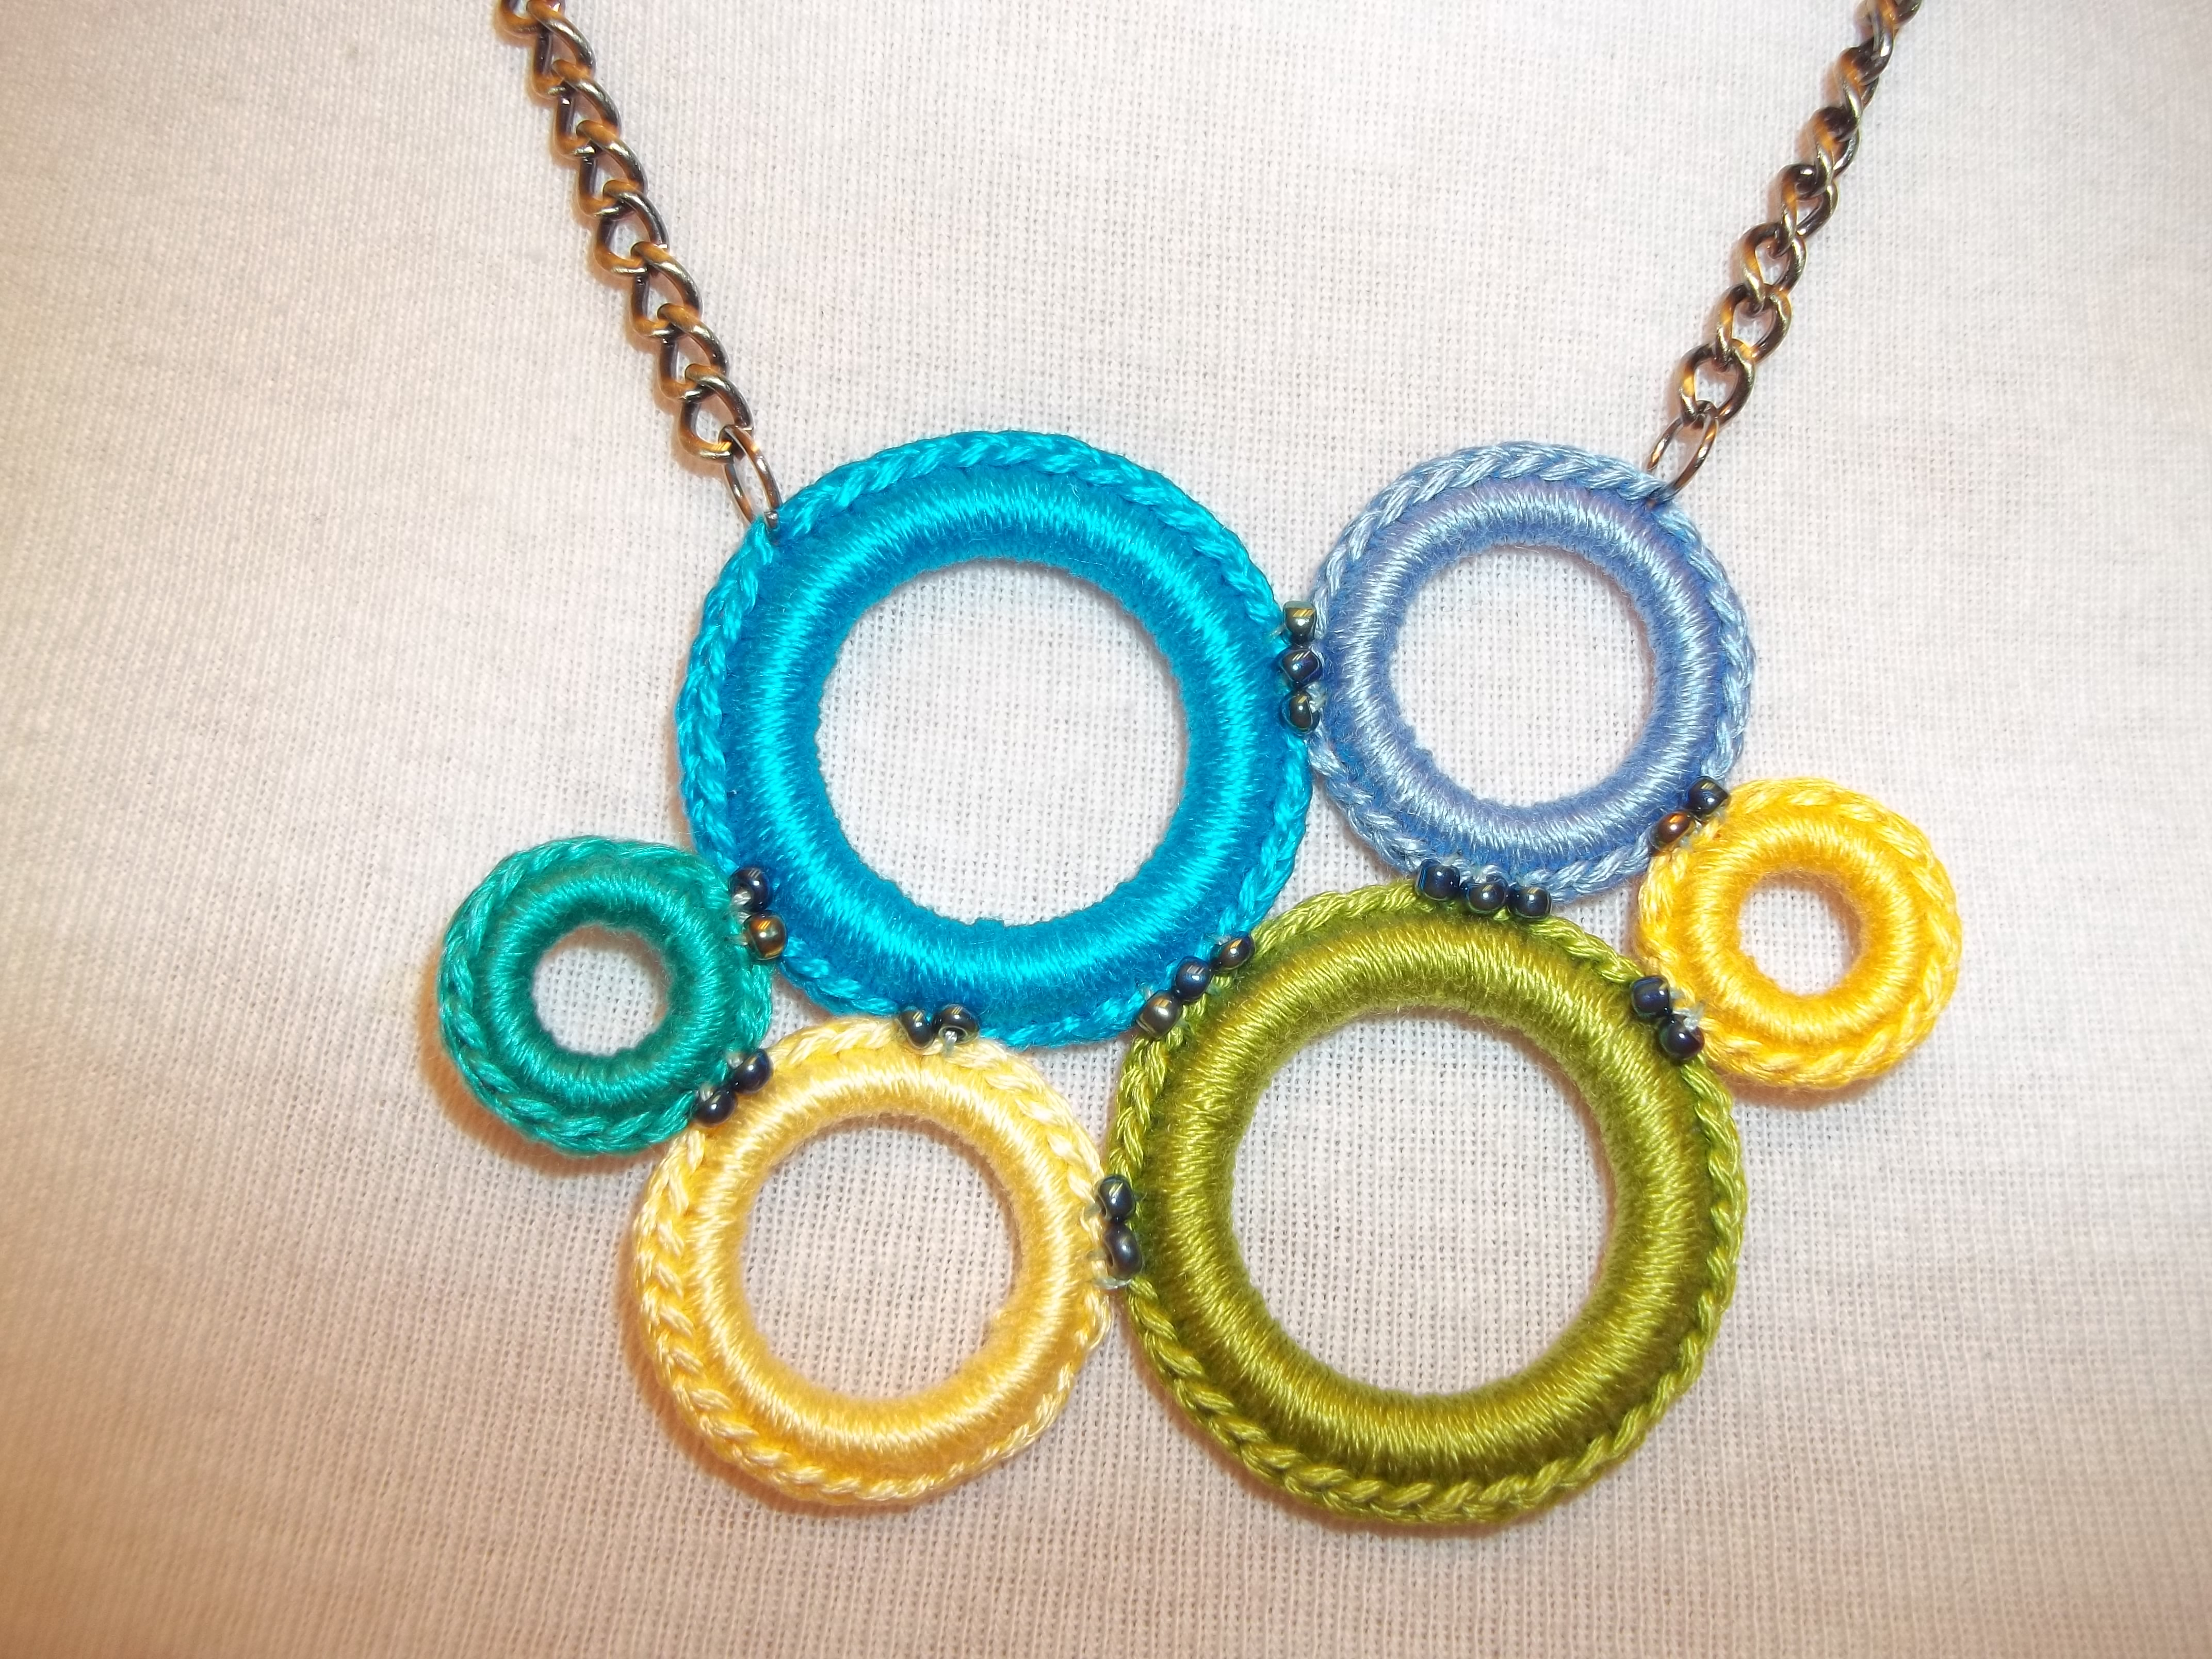 Free Crochet Ring Jewelry Patterns : Crochet Ring Necklace How To cre8tioncrochet